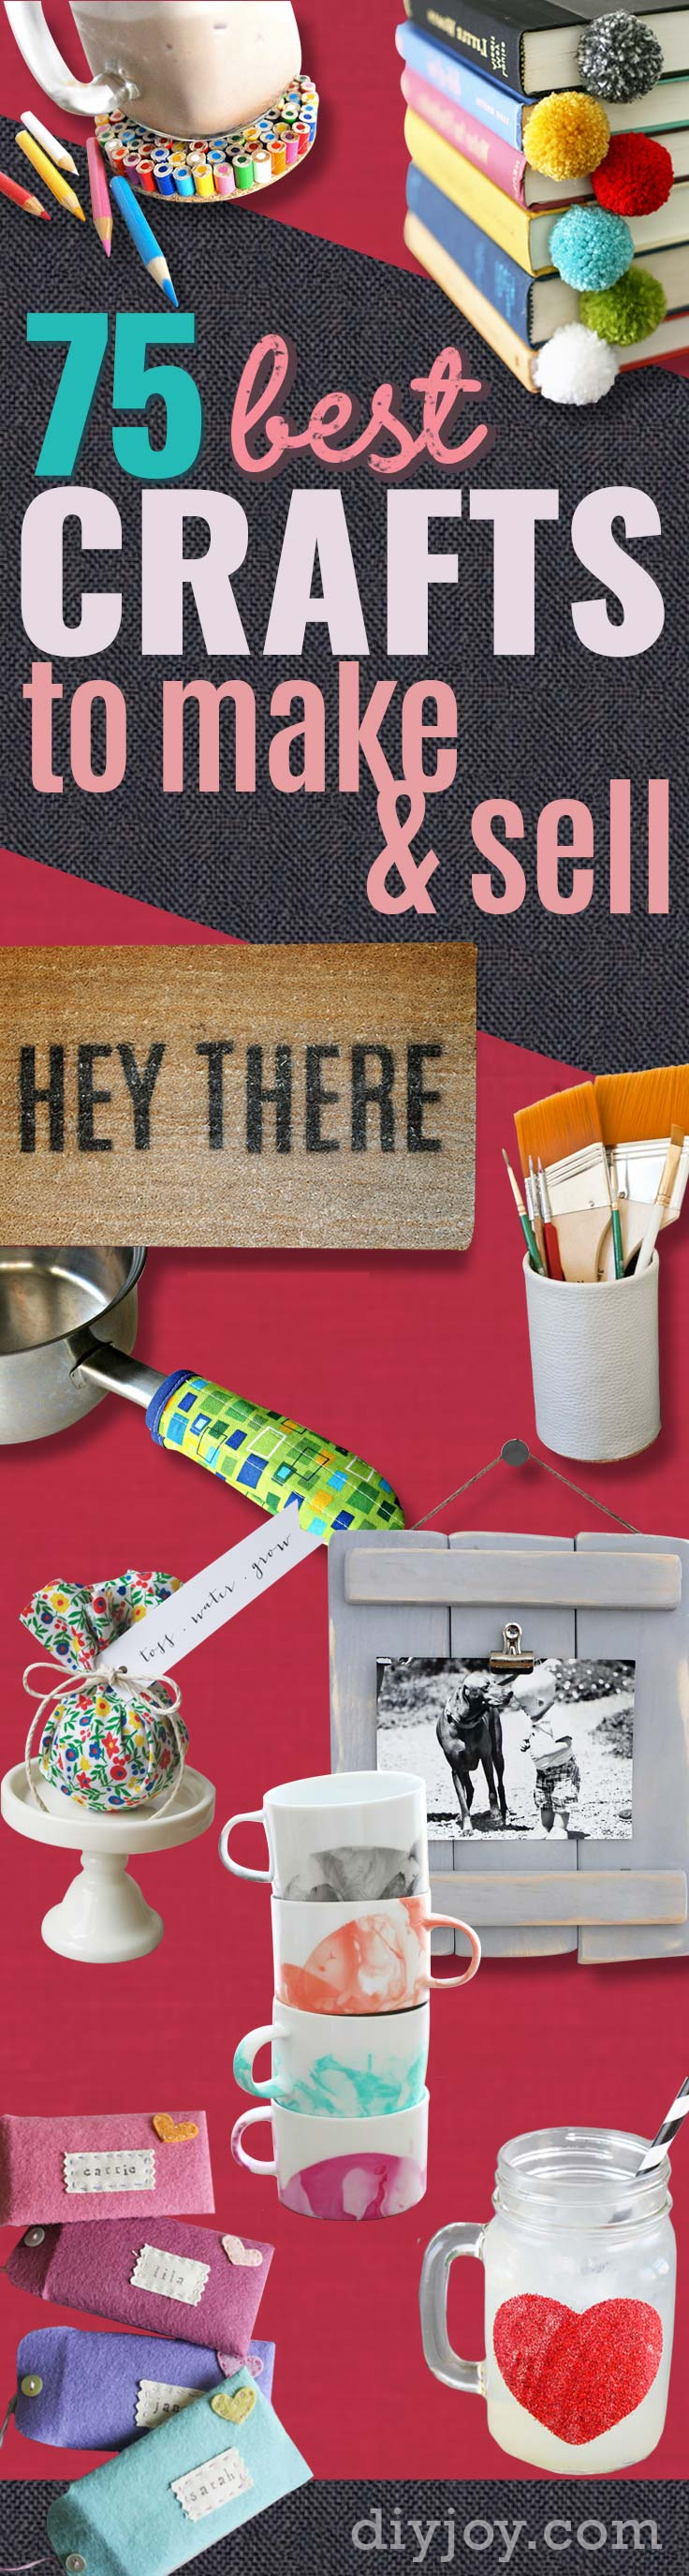 Brilliant Crafts To Make And Sell Diy Joy